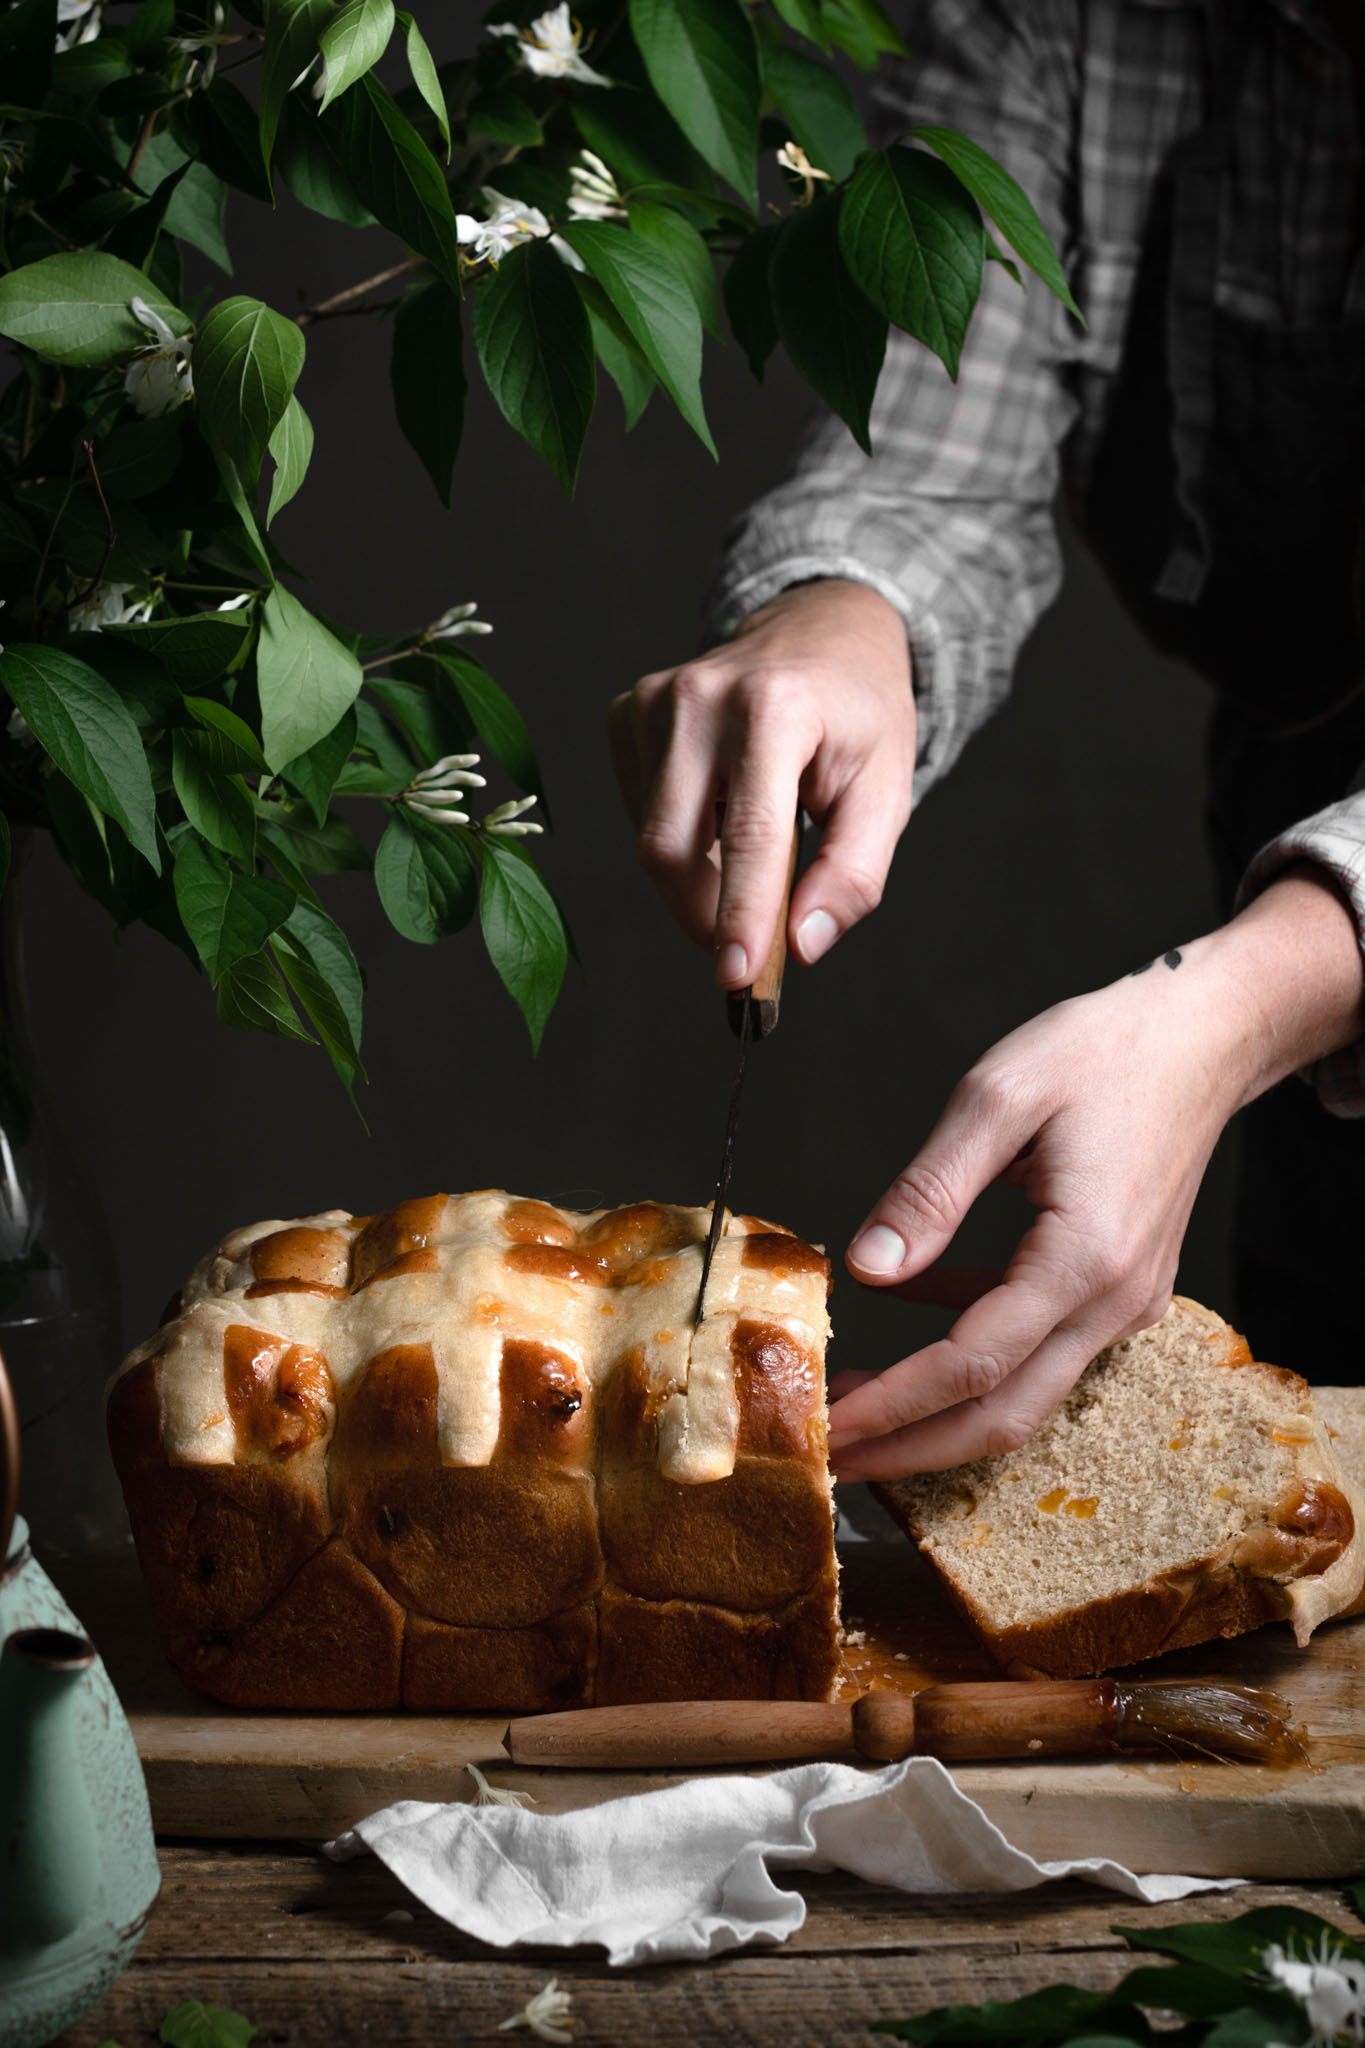 Slicing hot cross buns loaf recipe for Easter.